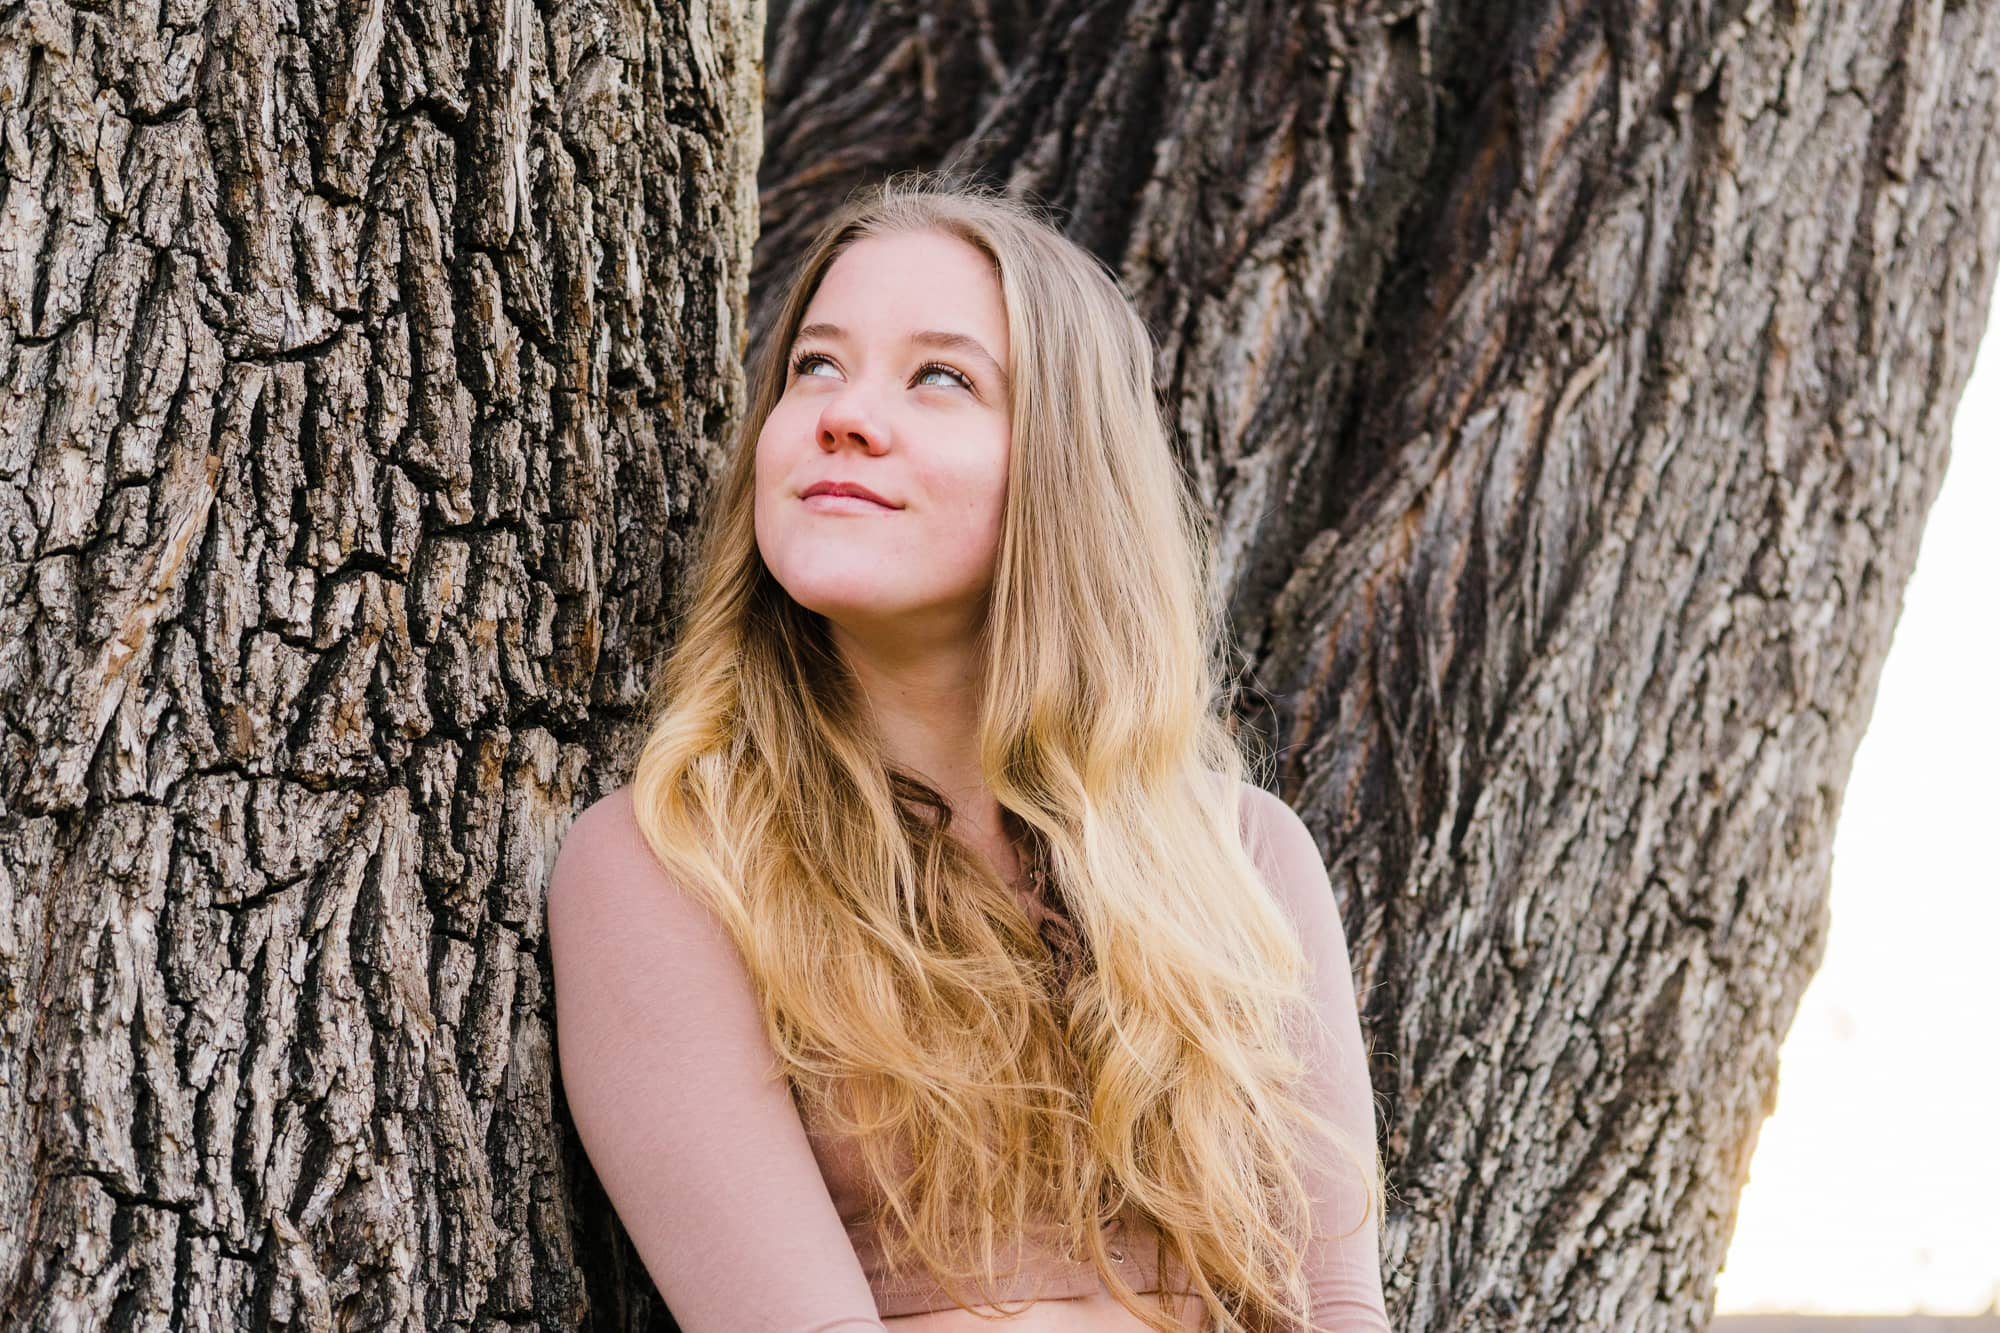 Portrait of woman leaning against tree and looking up in a playfully thoughtful way.